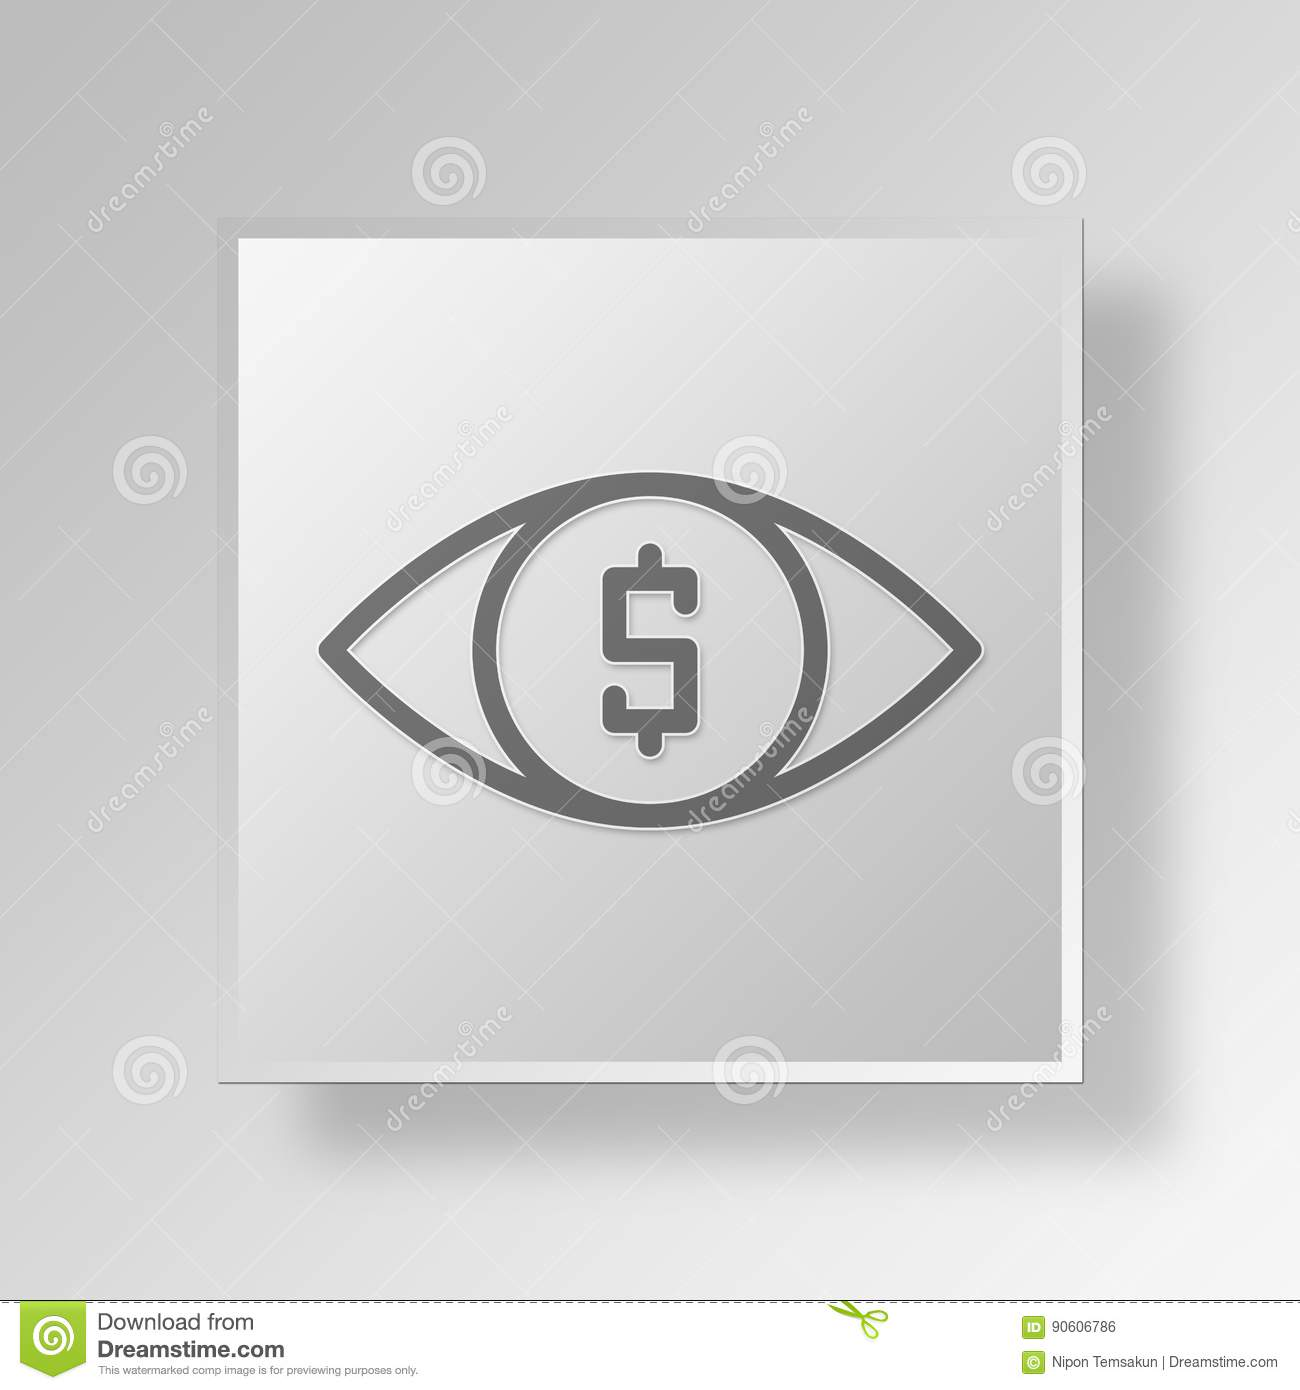 3D money eye icon Business Concept